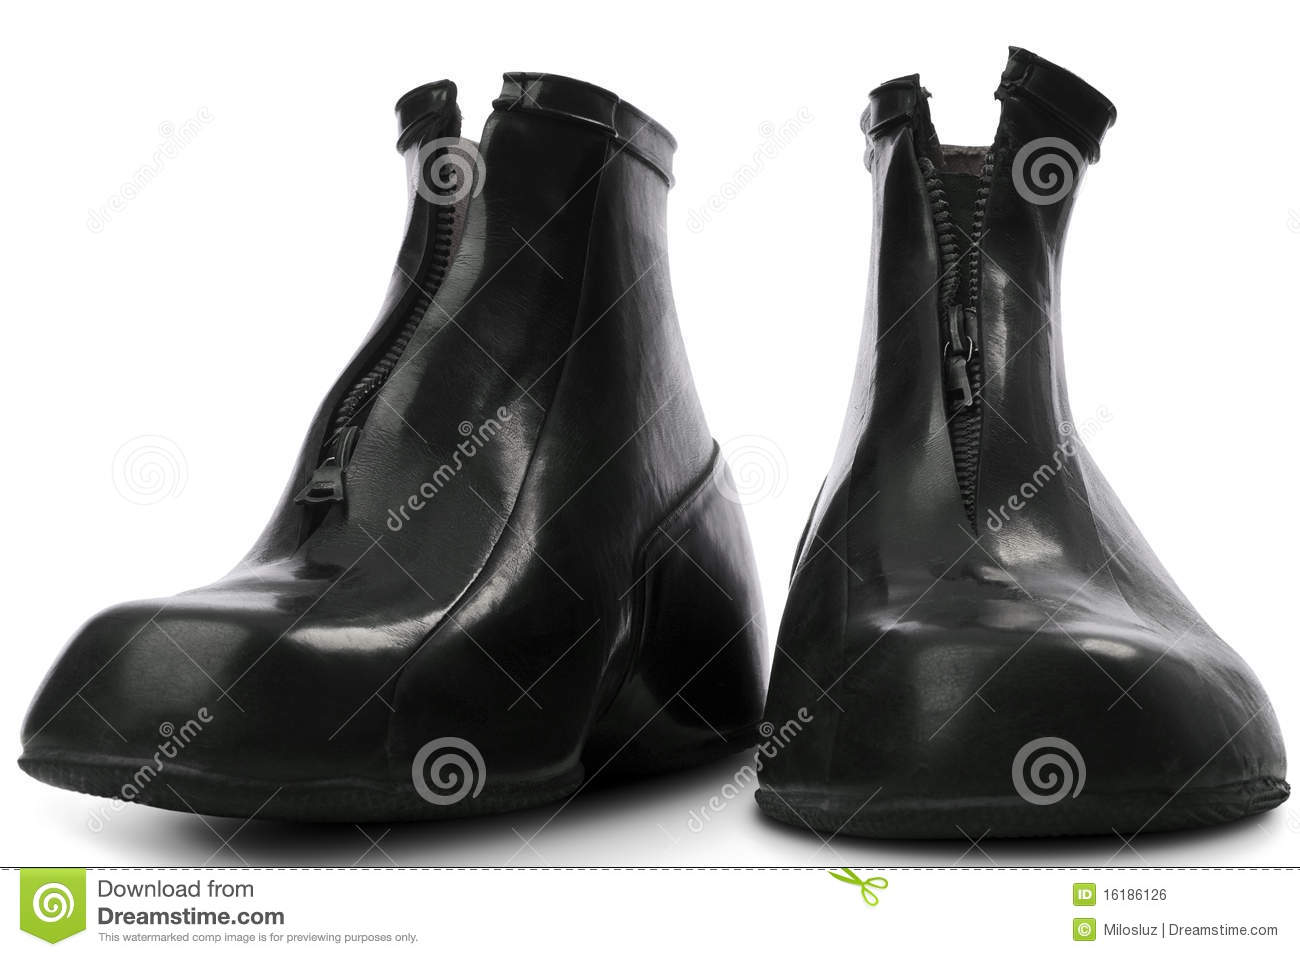 Galoshes Royalty Free Stock Image - Image: 16186126